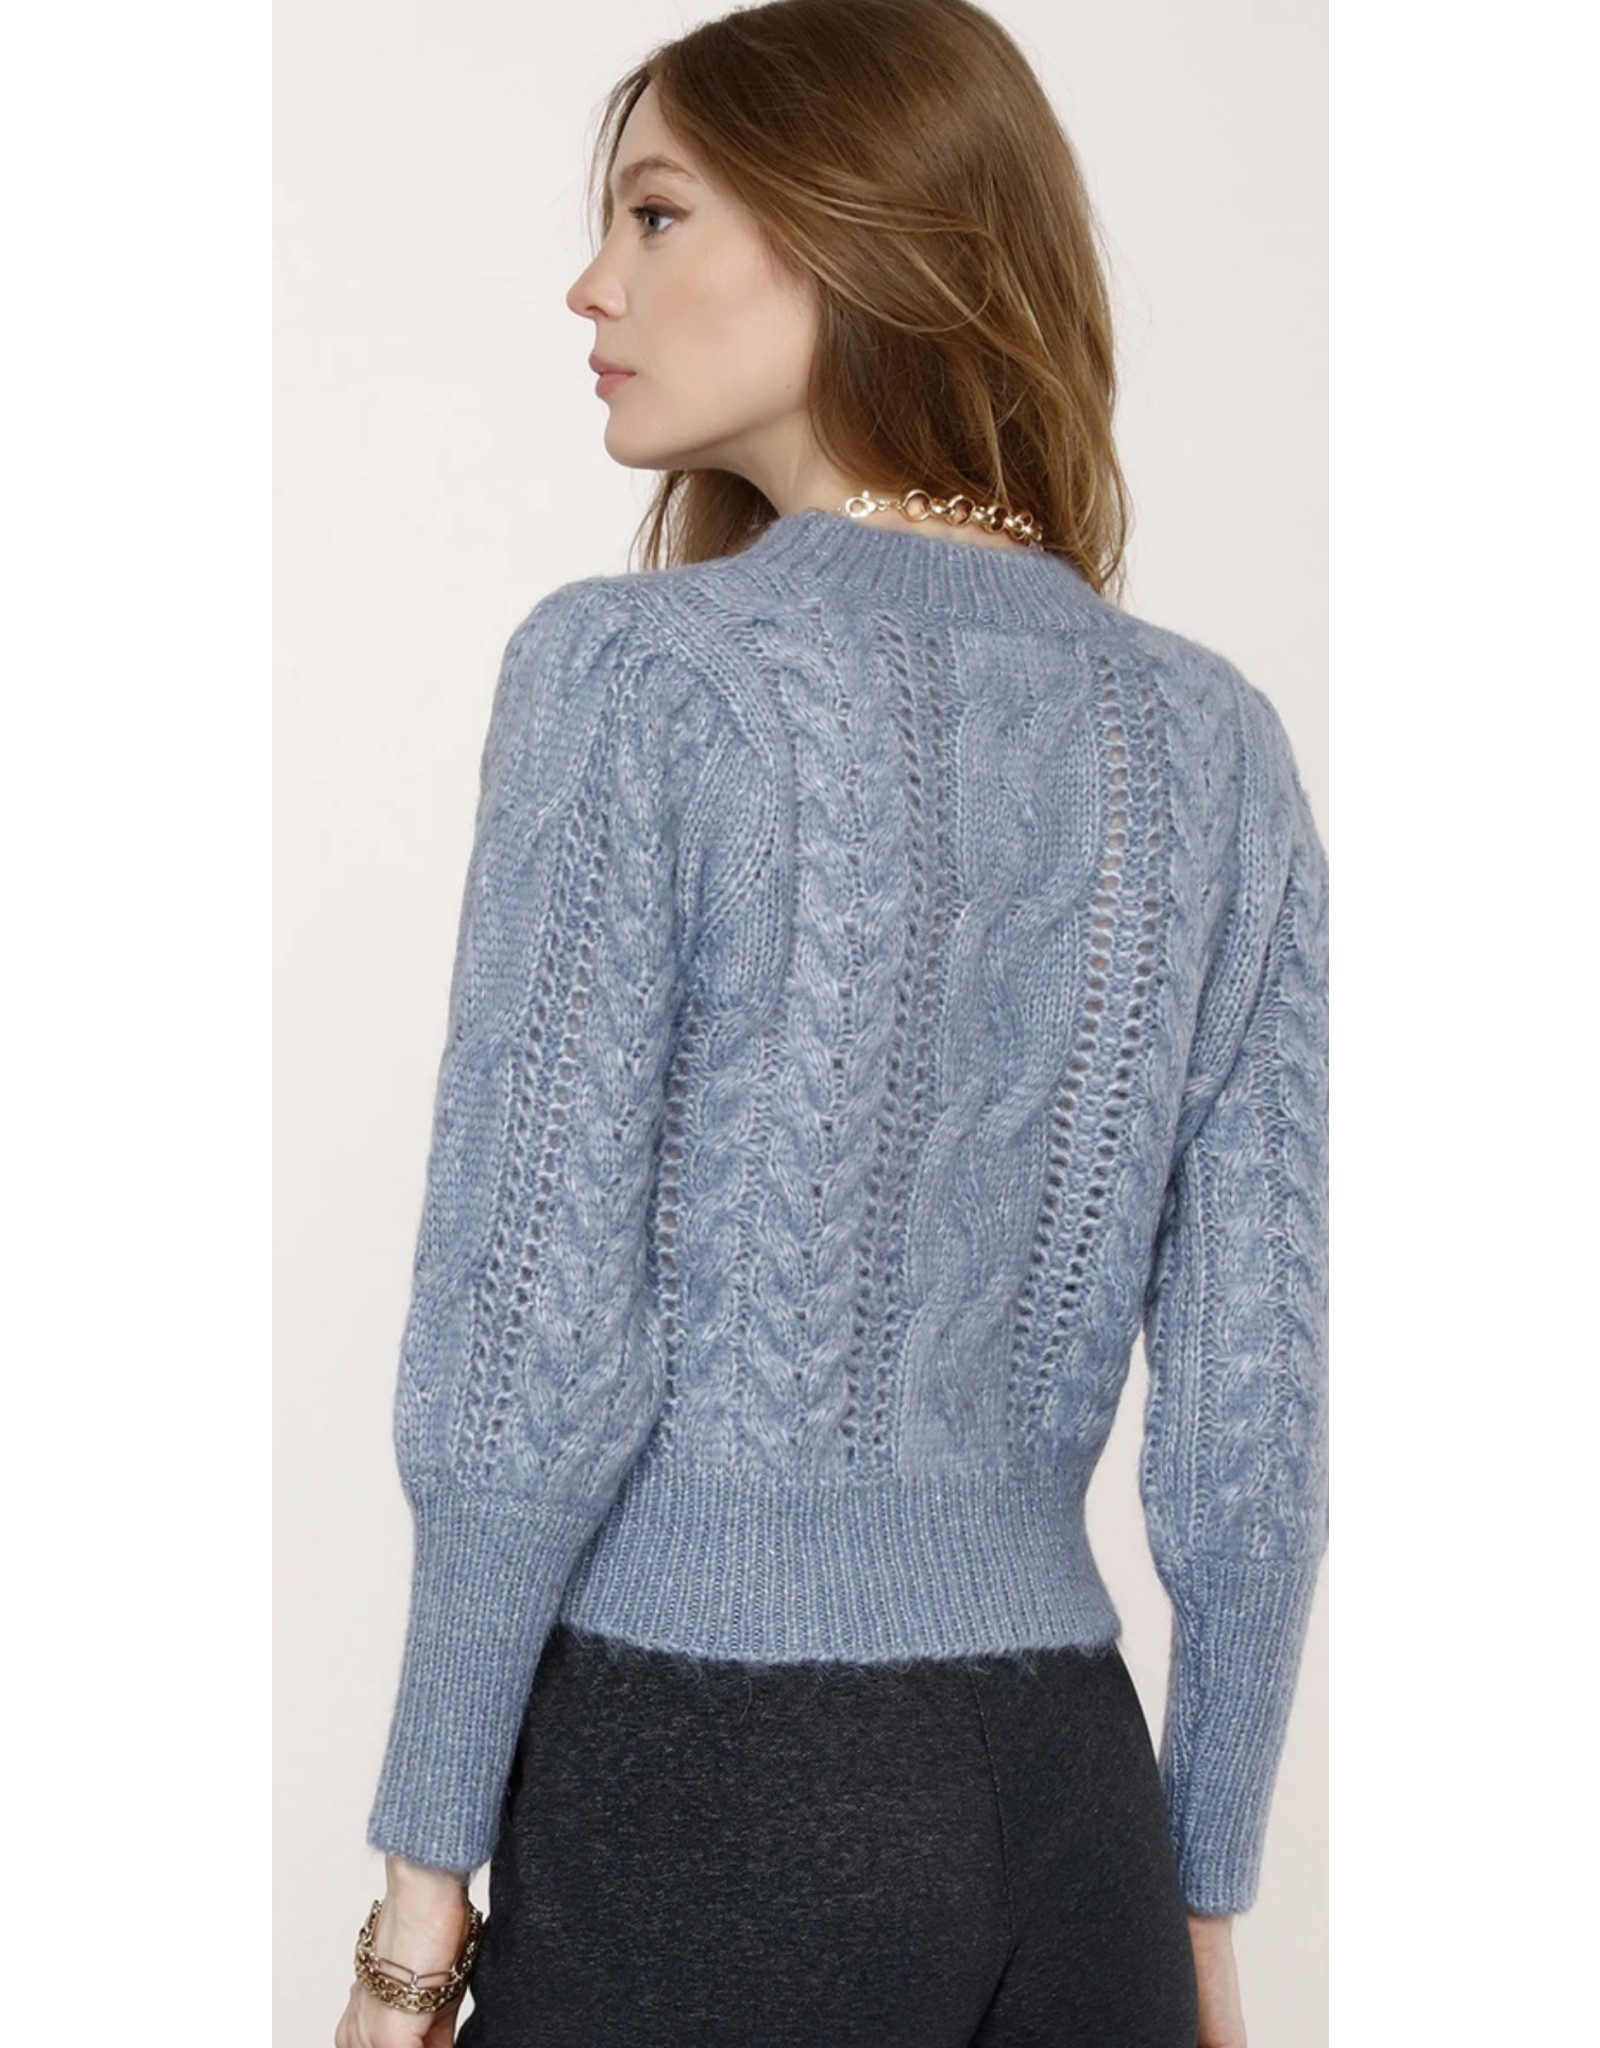 CABLE KNIT CLAIRE SWEATER